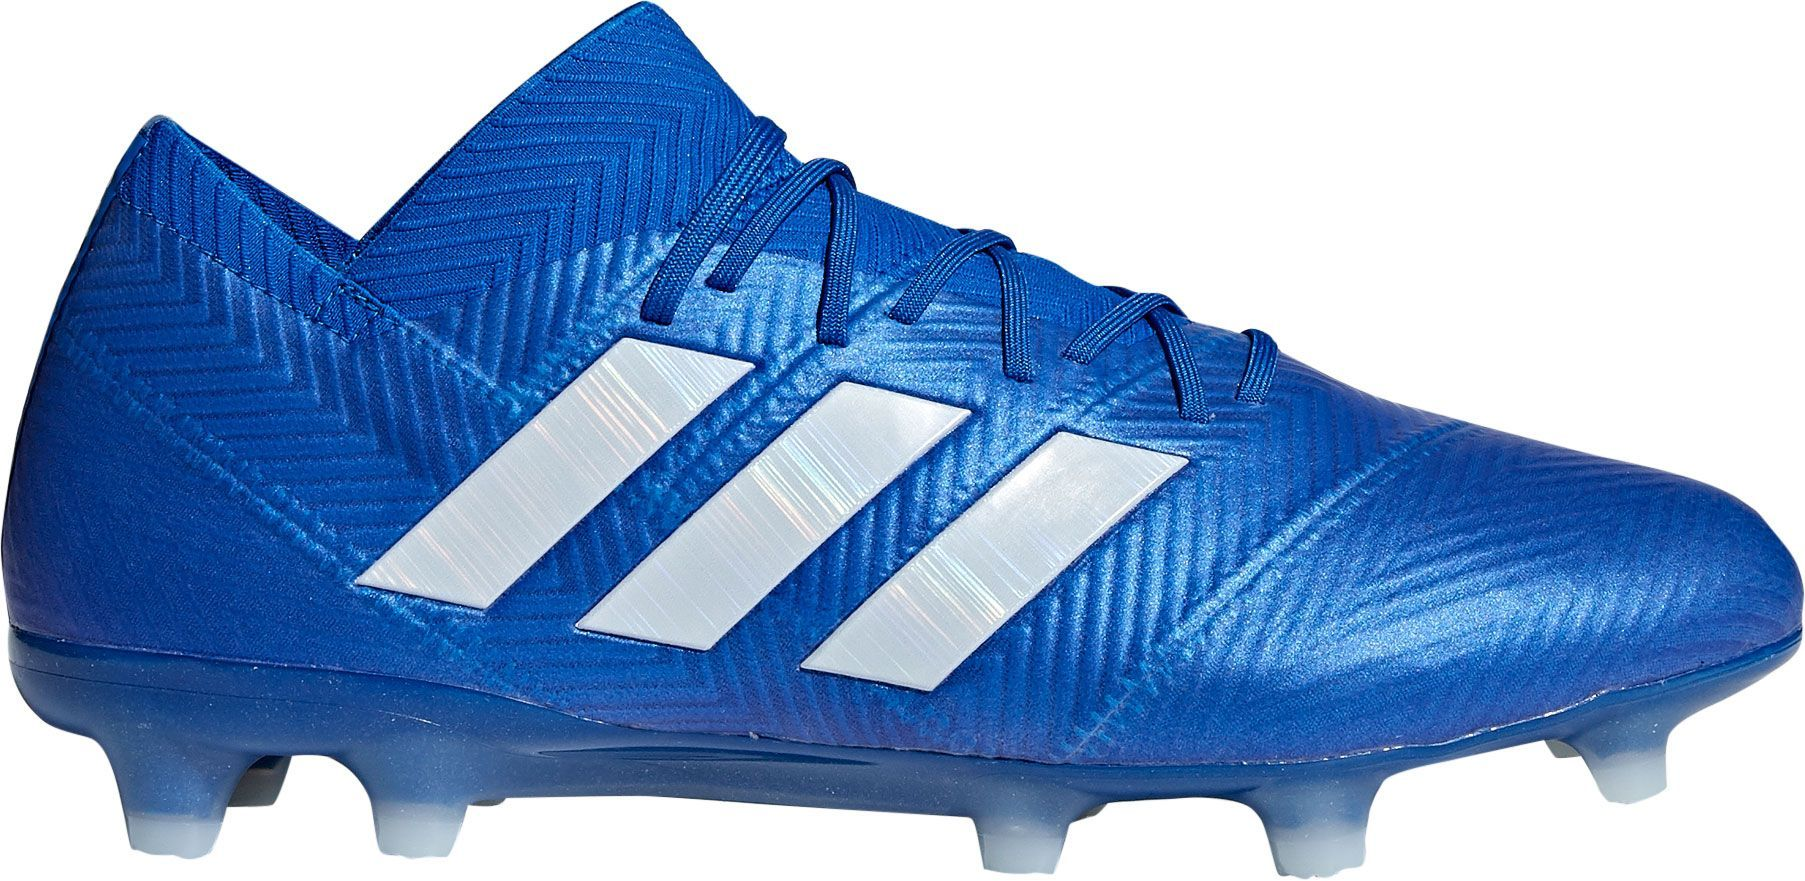 cd22a9cd4 adidas Men's Nemeziz 18.1 FG Soccer Cleats | Products | Soccer ...